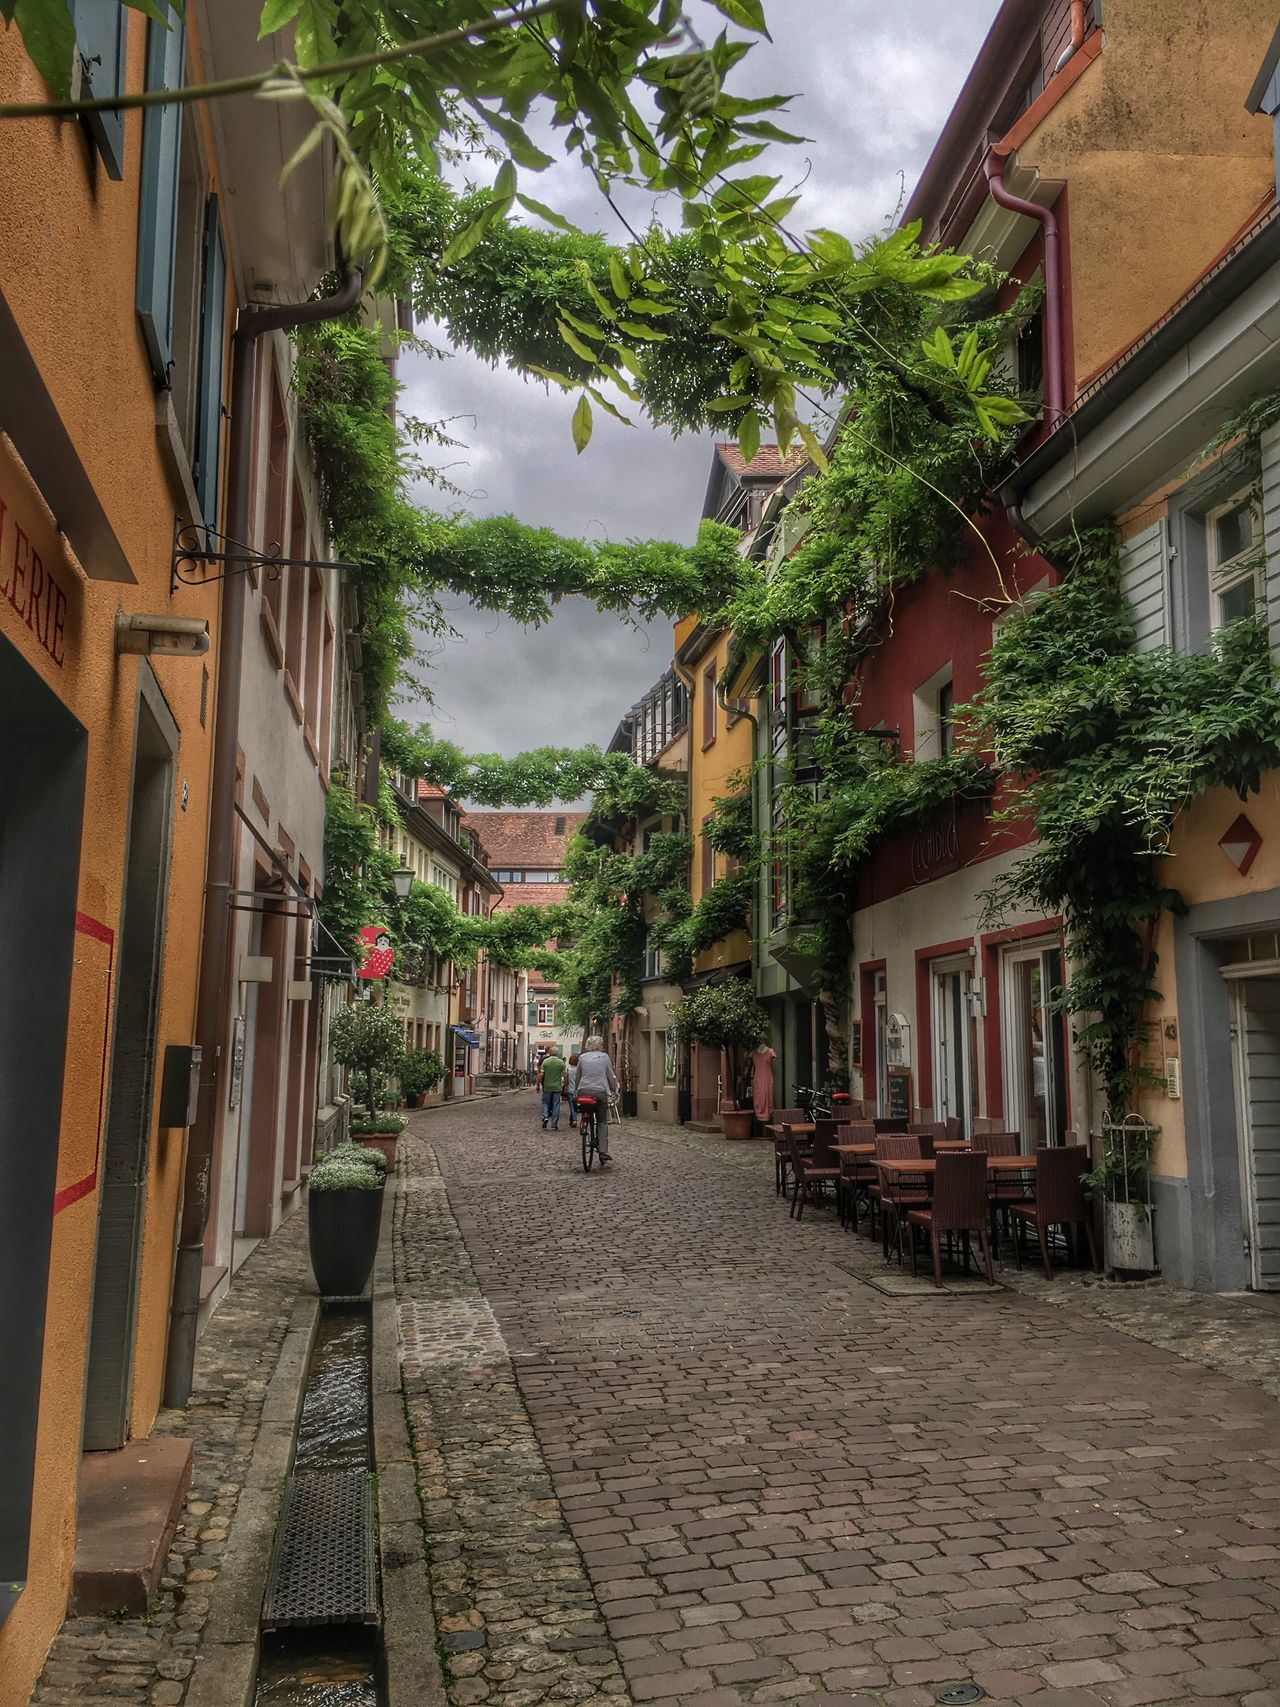 Bächle City Cloud - Sky Cobblestone Cosy Day Old Town Residential Building Street